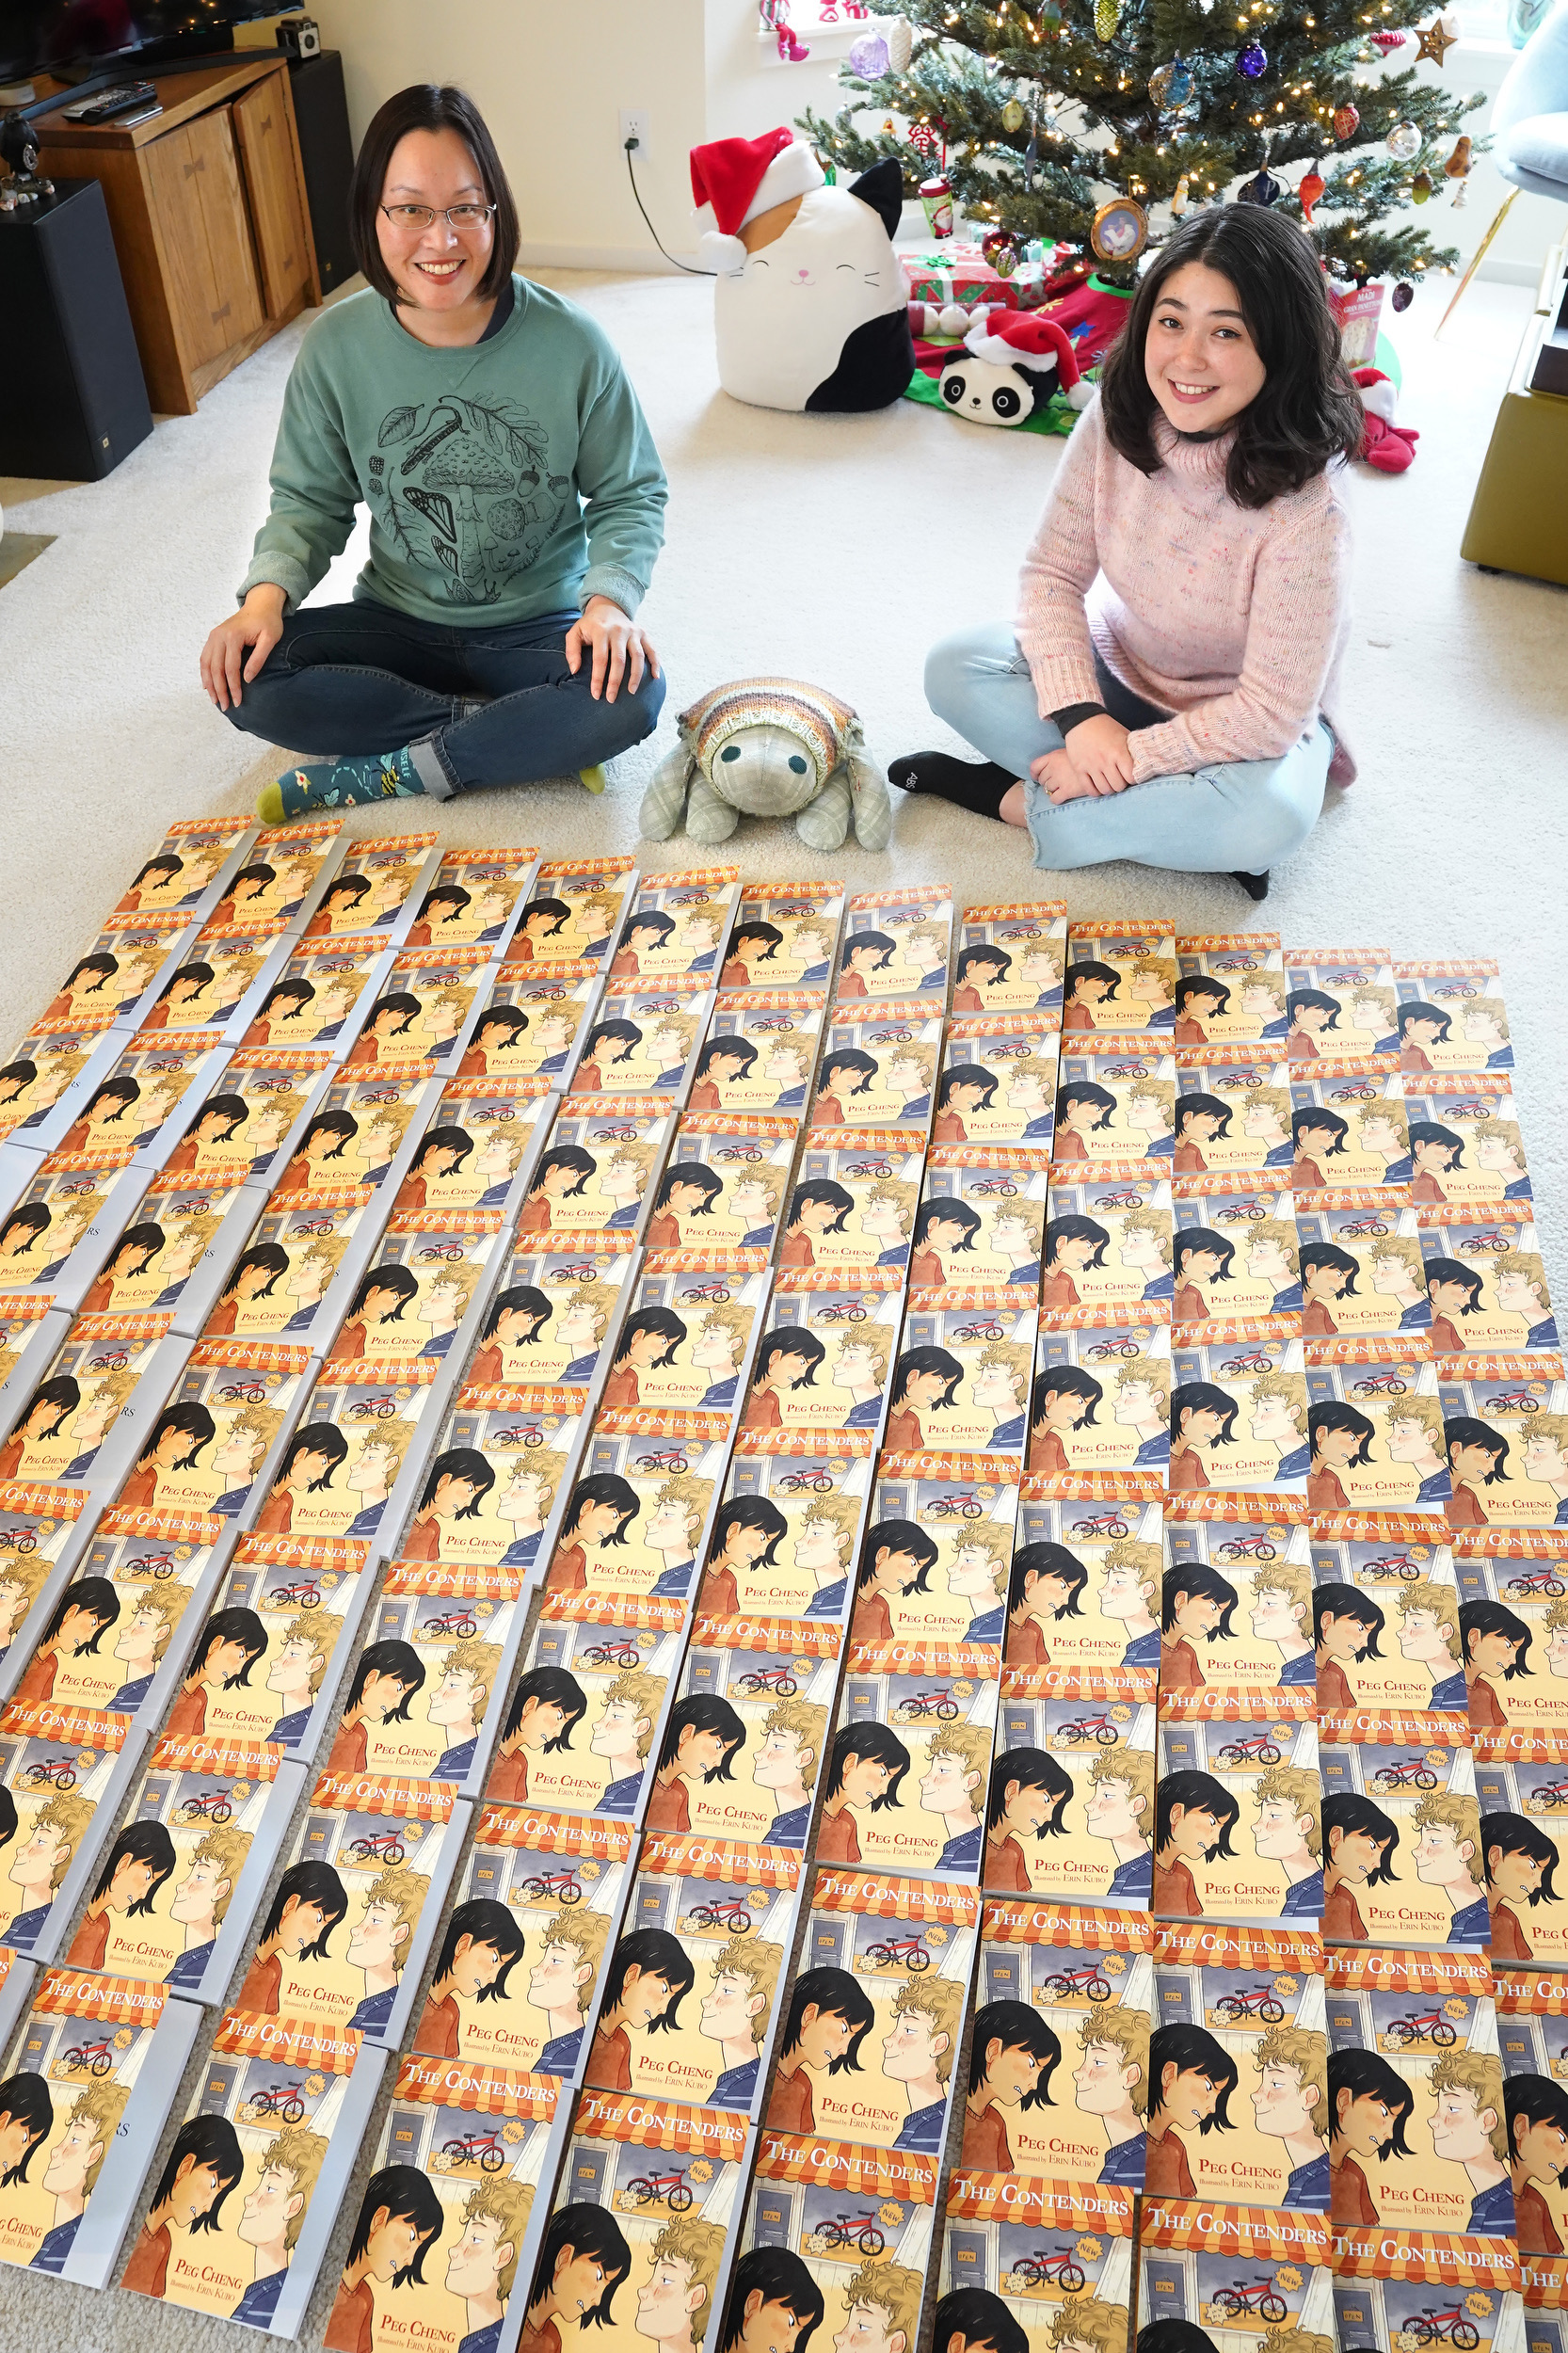 Author Peg Cheng & illustrator Erin Kubo sign the first 100 copies of The Contenders.